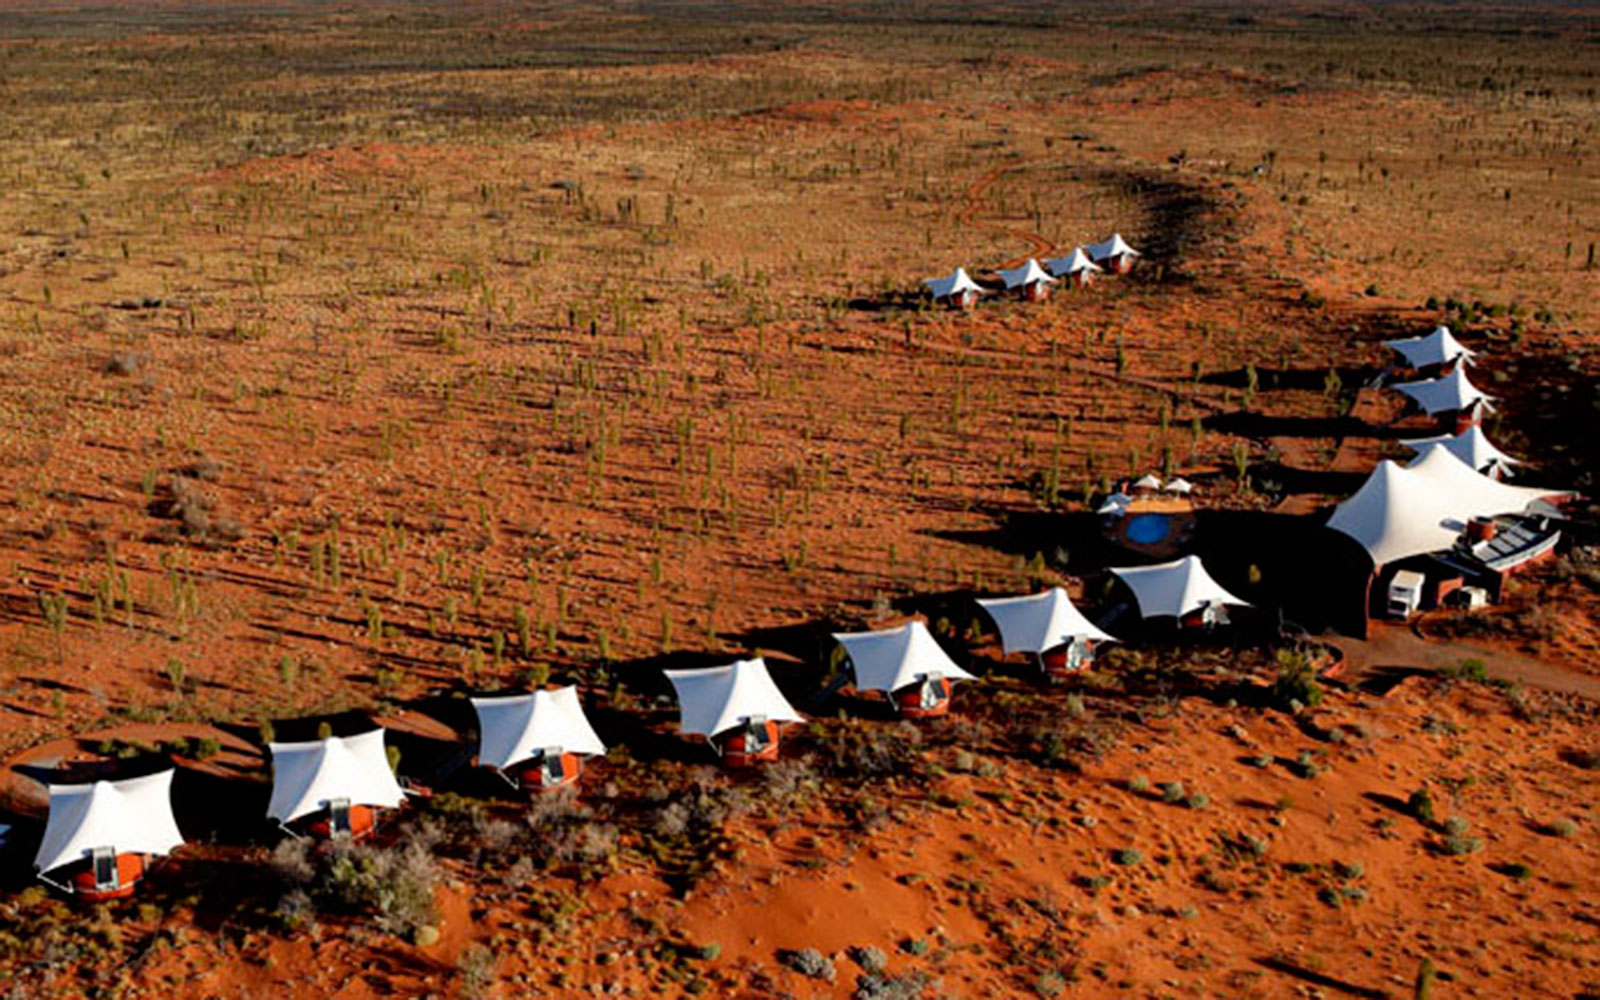 The World's Most Remote Hotels